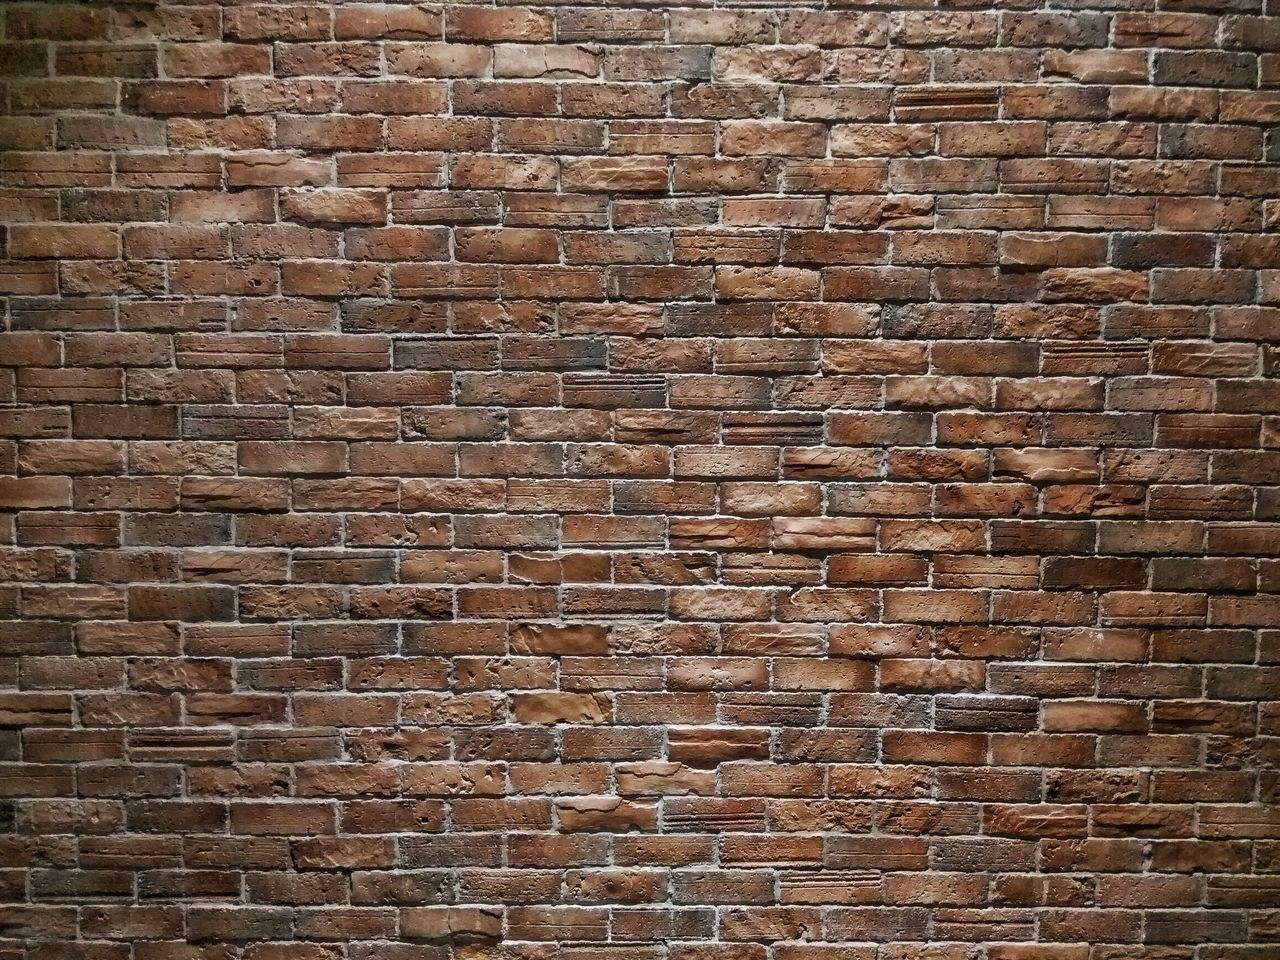 brick wall, backgrounds, brown, full frame, brick, textured, architecture, built structure, pattern, no people, building exterior, day, outdoors, close-up